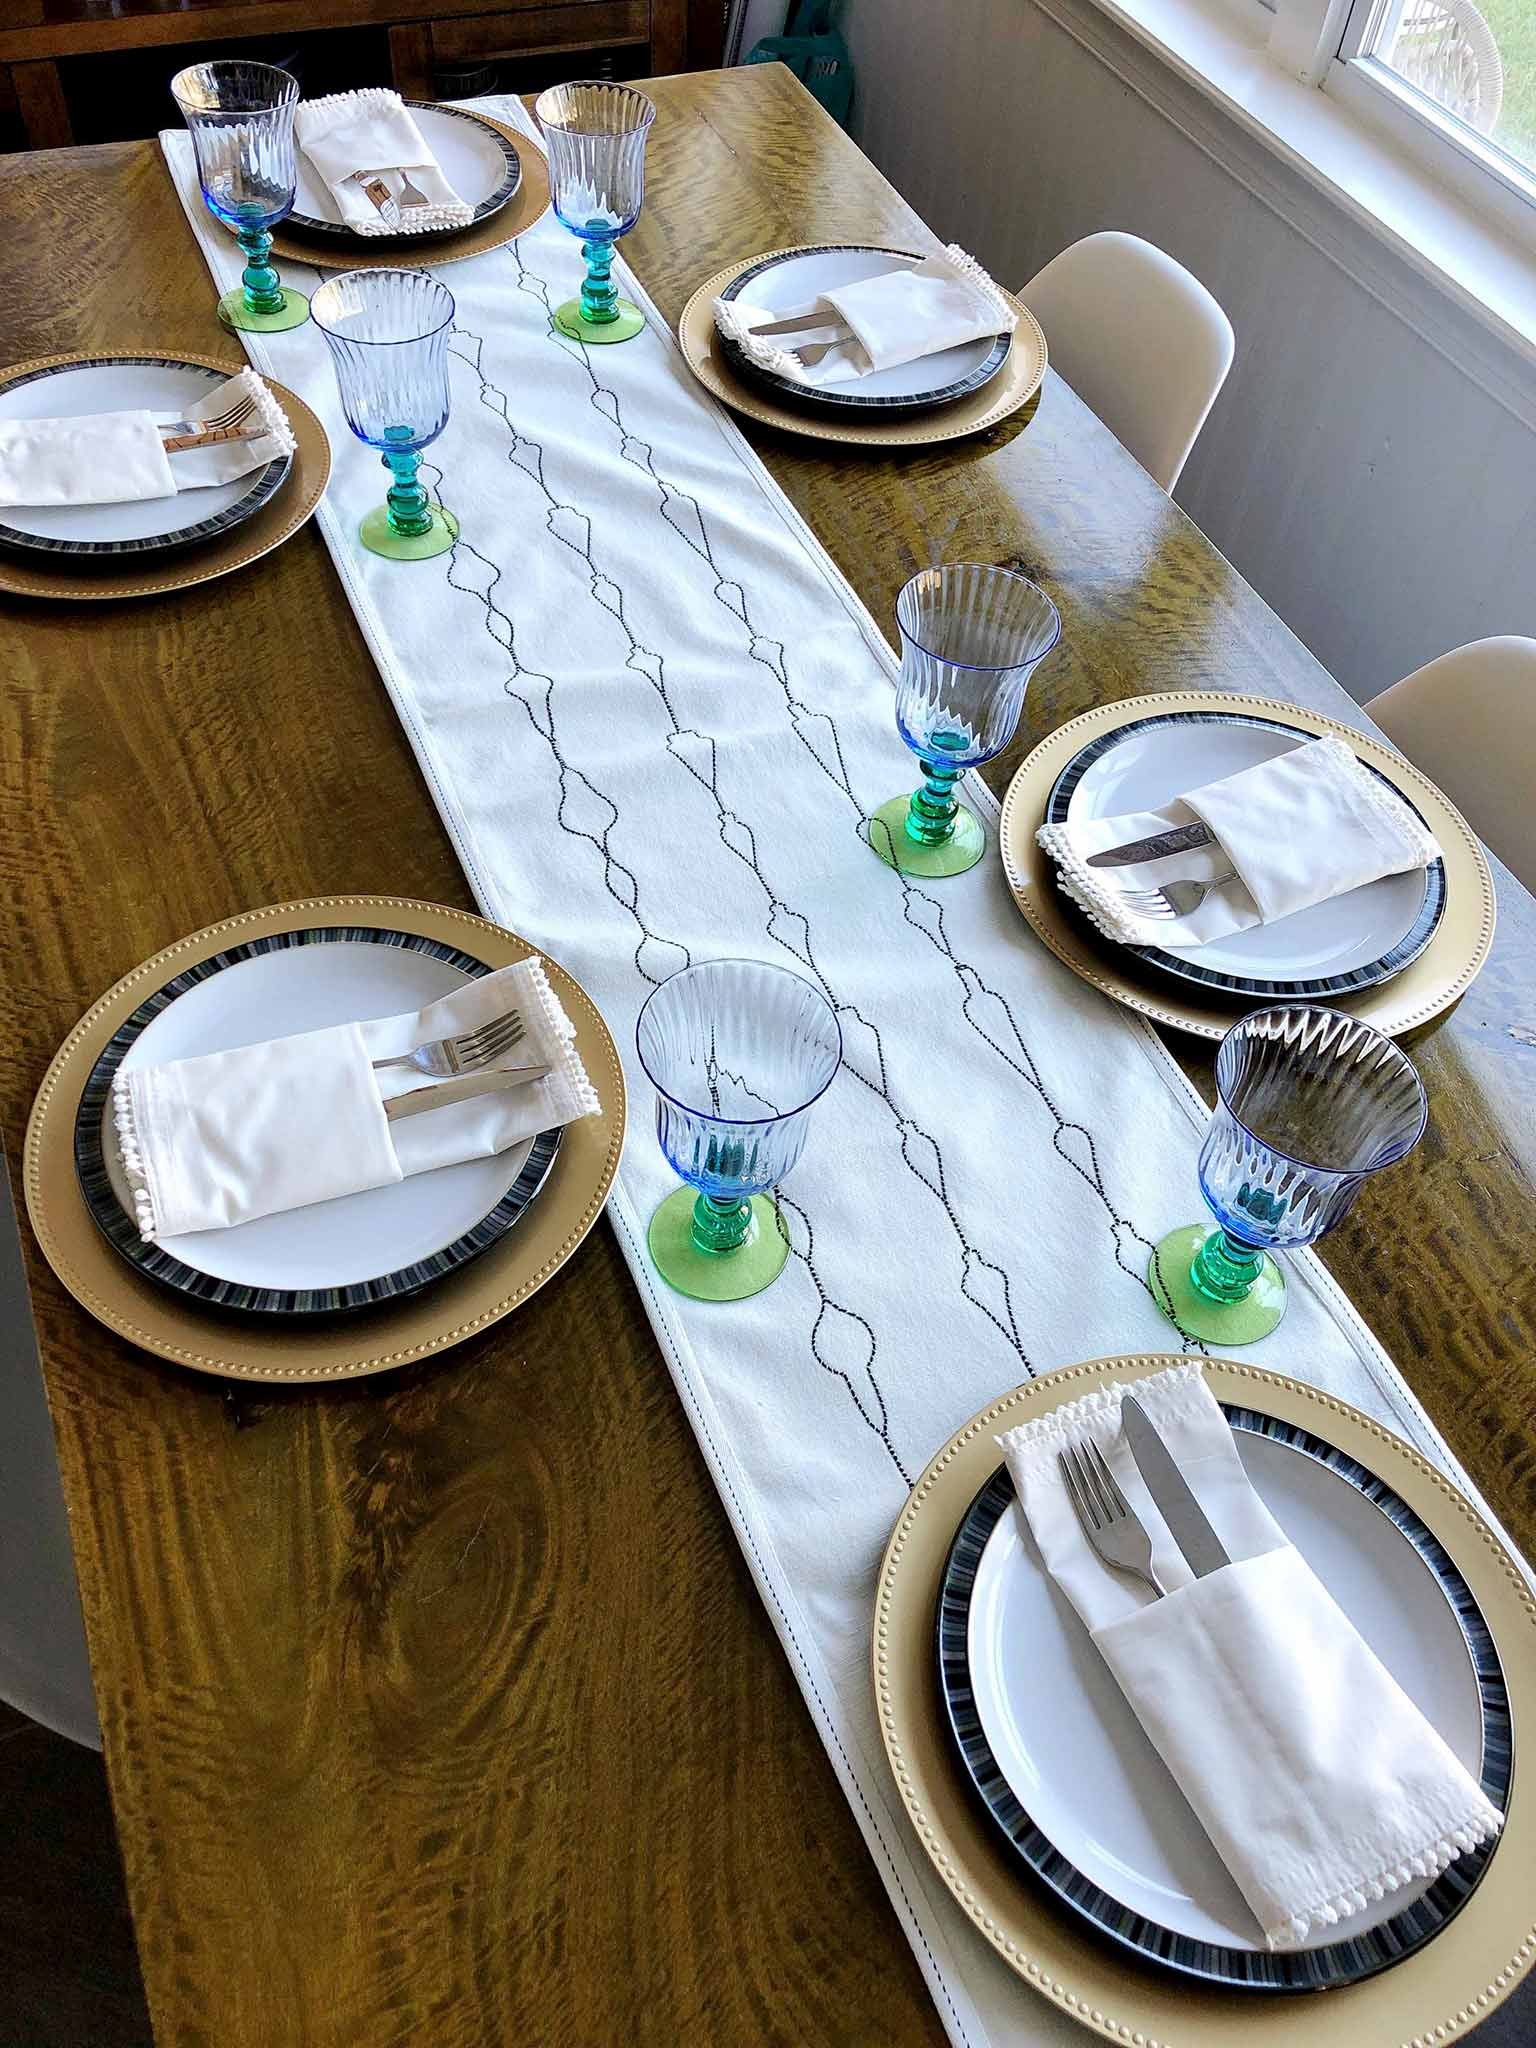 Adding dinnerware and glassware | How to Create a Beautiful Tablescape on a Budget | That Homebird Life Blog #christmasdecor #tablescape